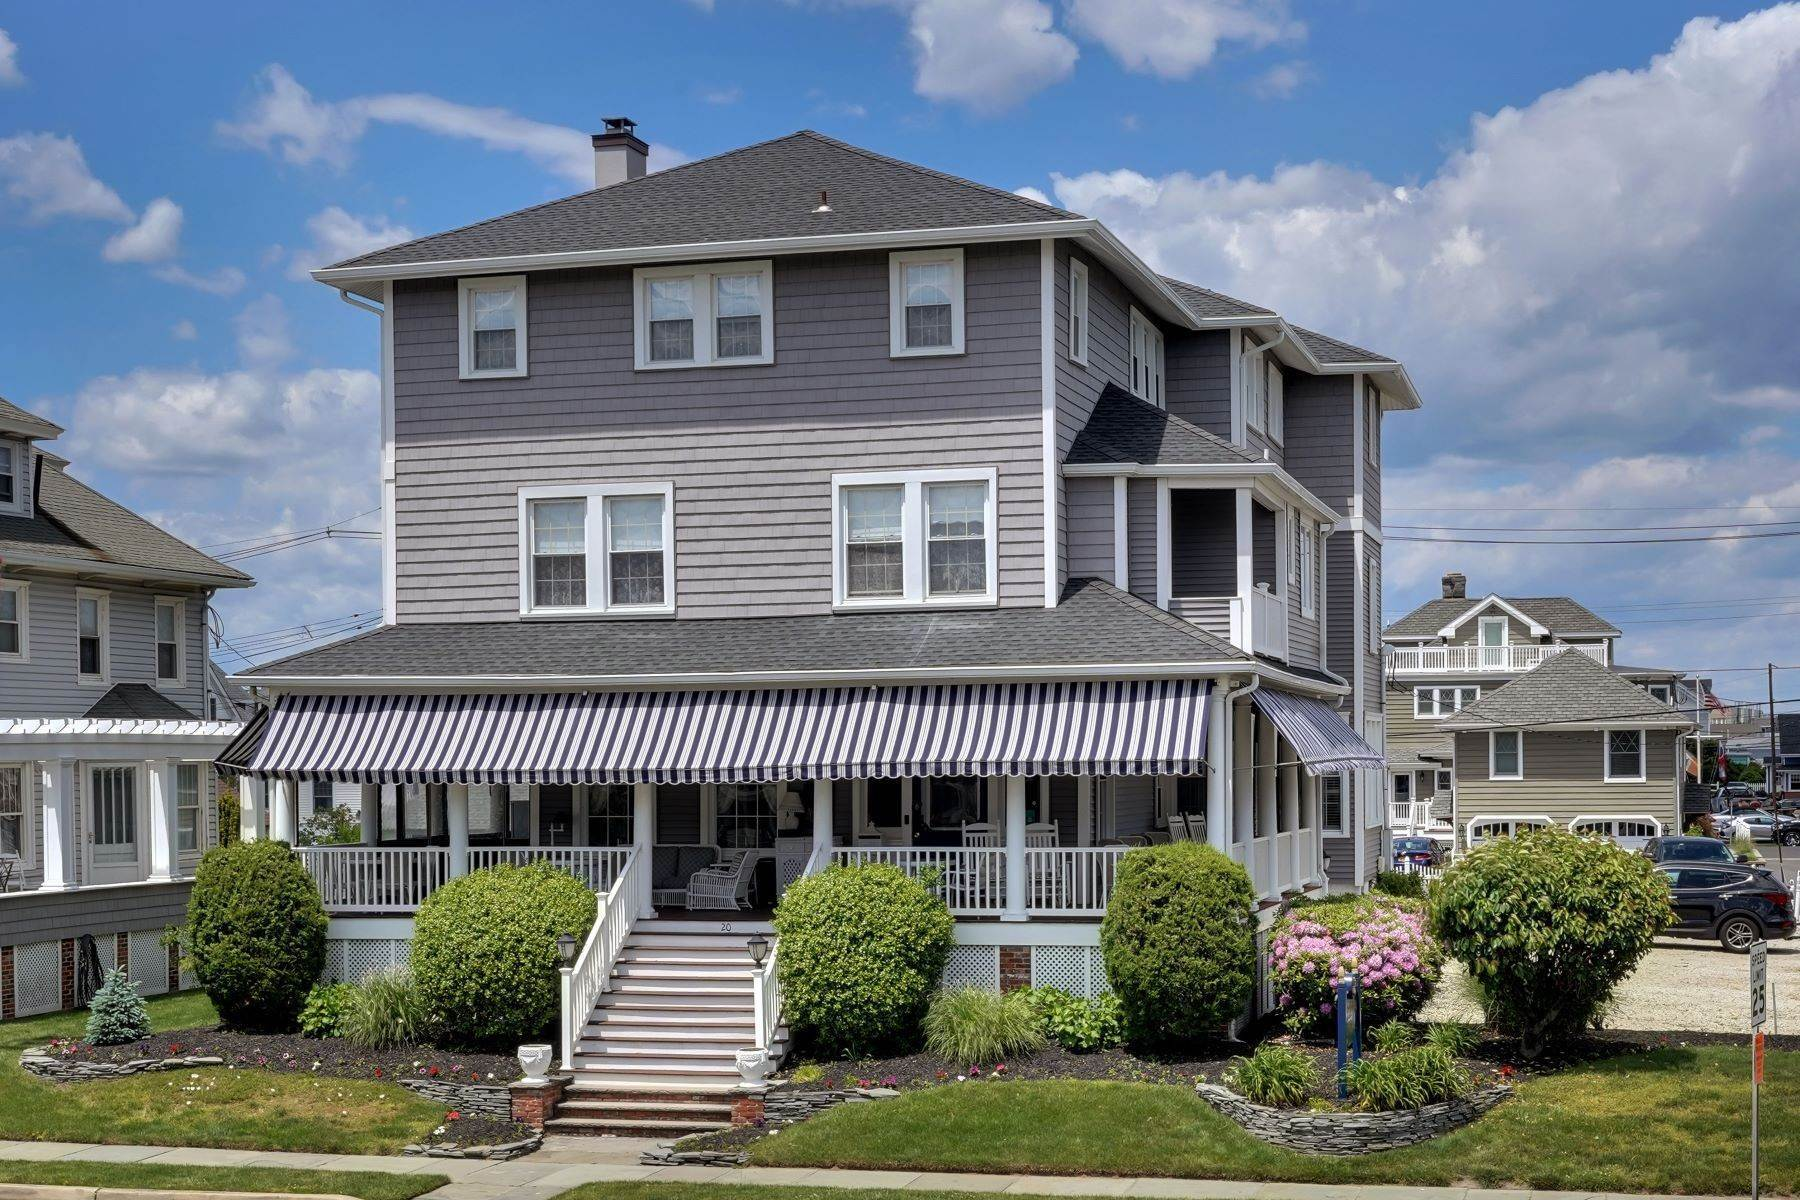 Property for Sale at Meticulously Maintained B&B 20 Woodland Avenue Avon by the Sea, New Jersey 07717 United States